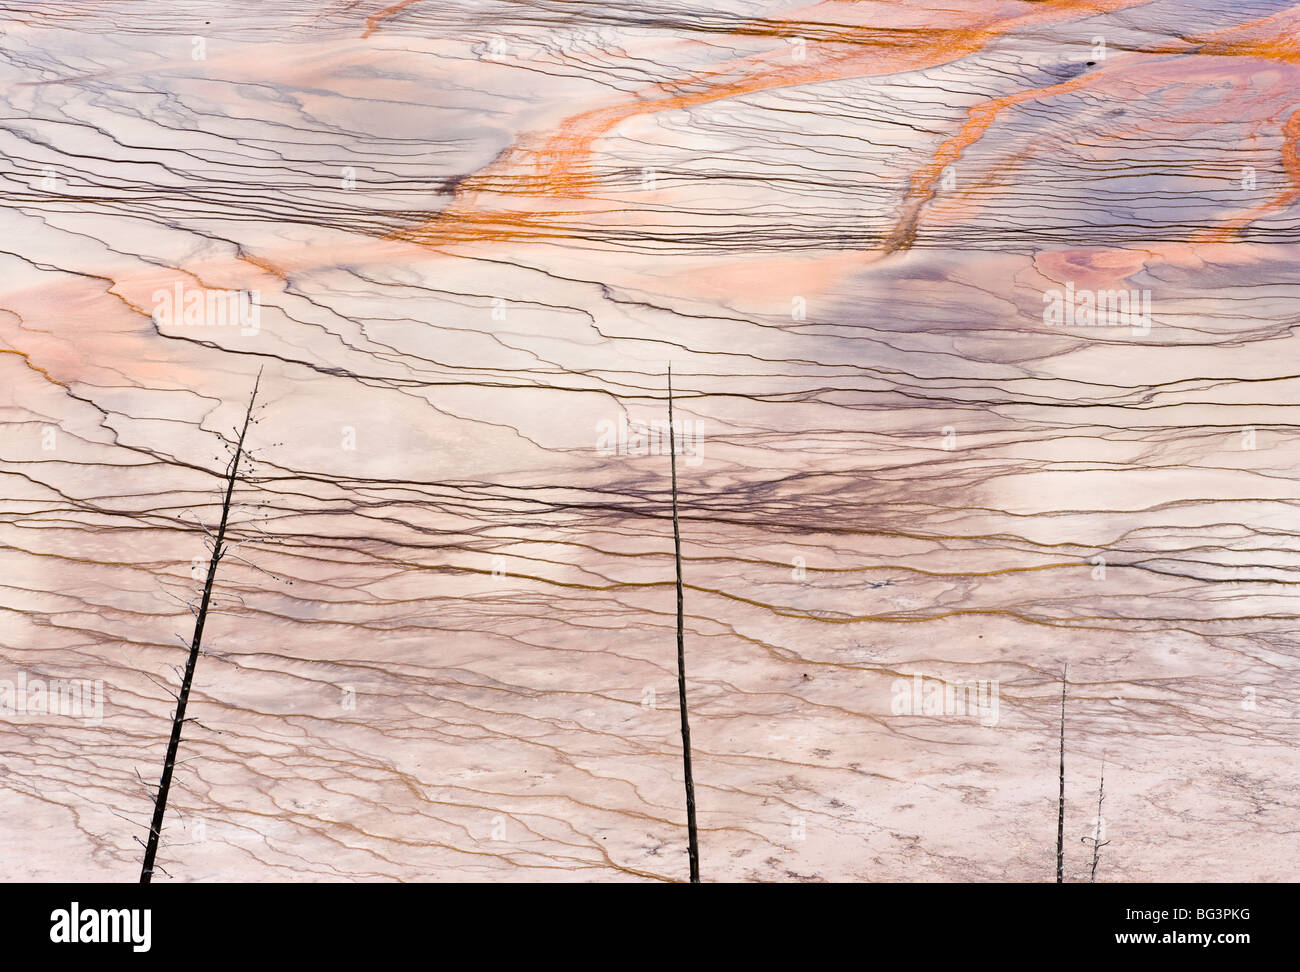 A detail view of the Grand Prismatic Springs bacterial mats in Yellowstone National Park, Wyoming, USA. - Stock Image